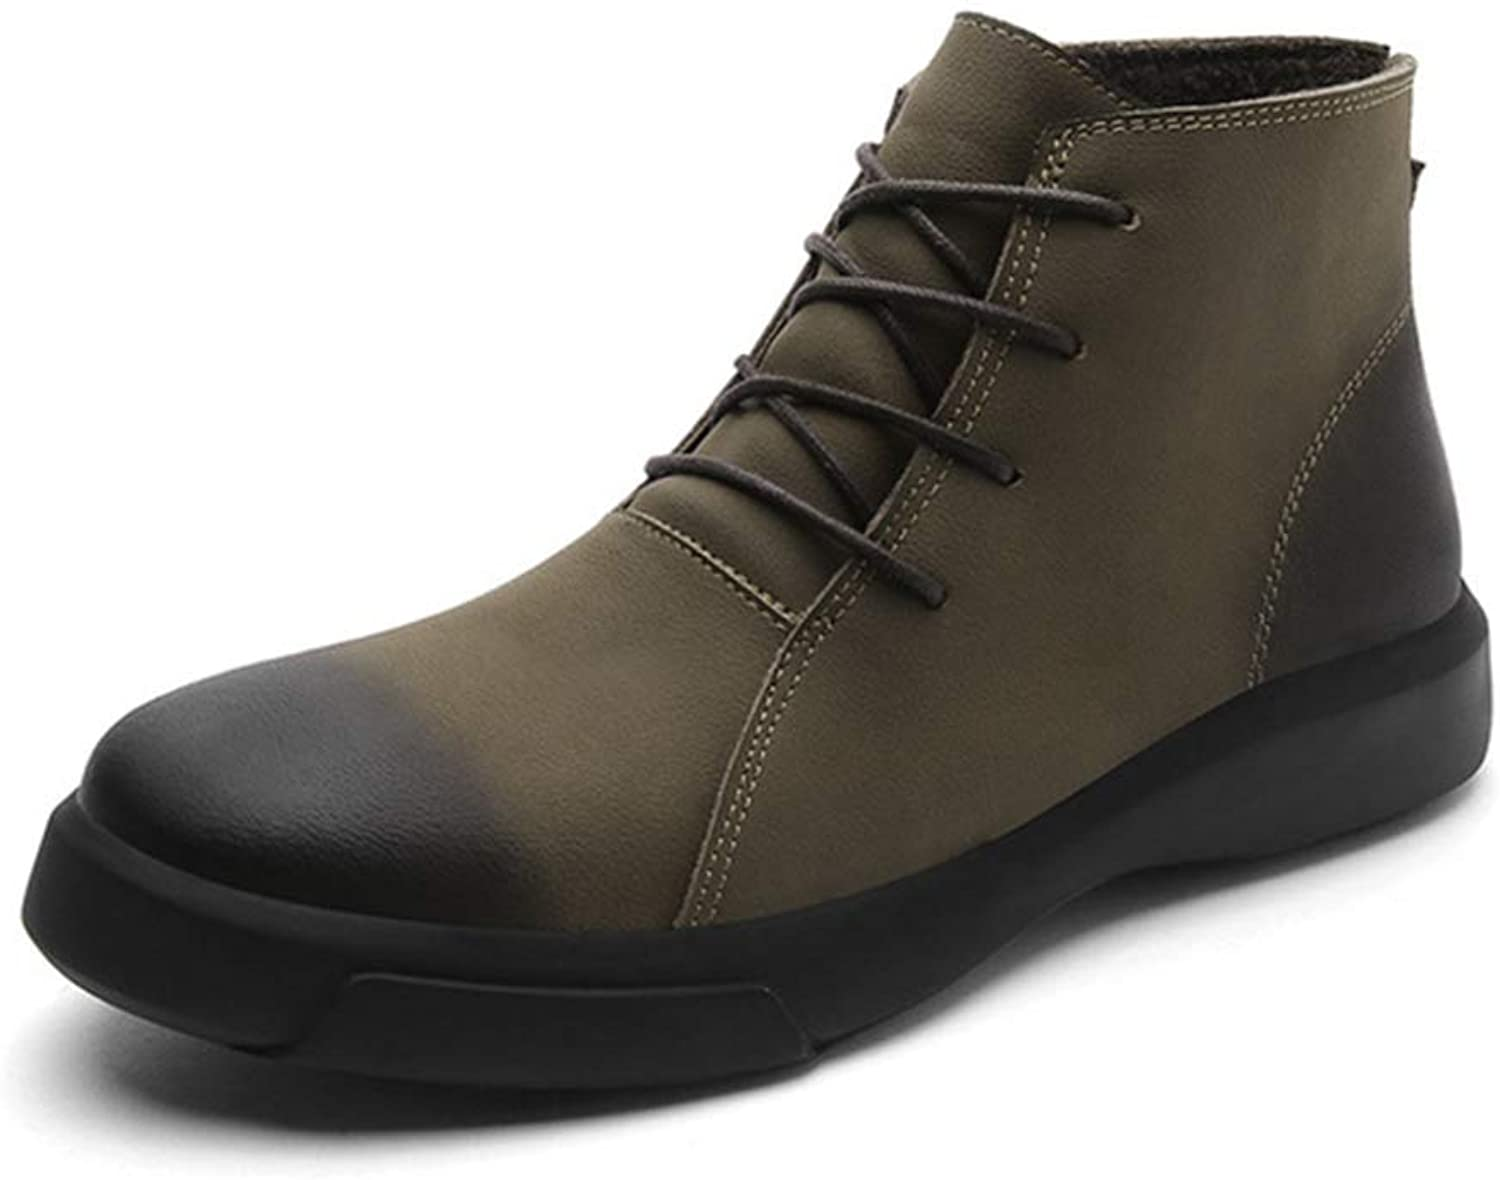 Men'S Martin Boots Chelsea Boots Casual shoes Outdoor Travel Boots Ankle Boots Unisex Adult Boots Desert Boots Hiking Boots